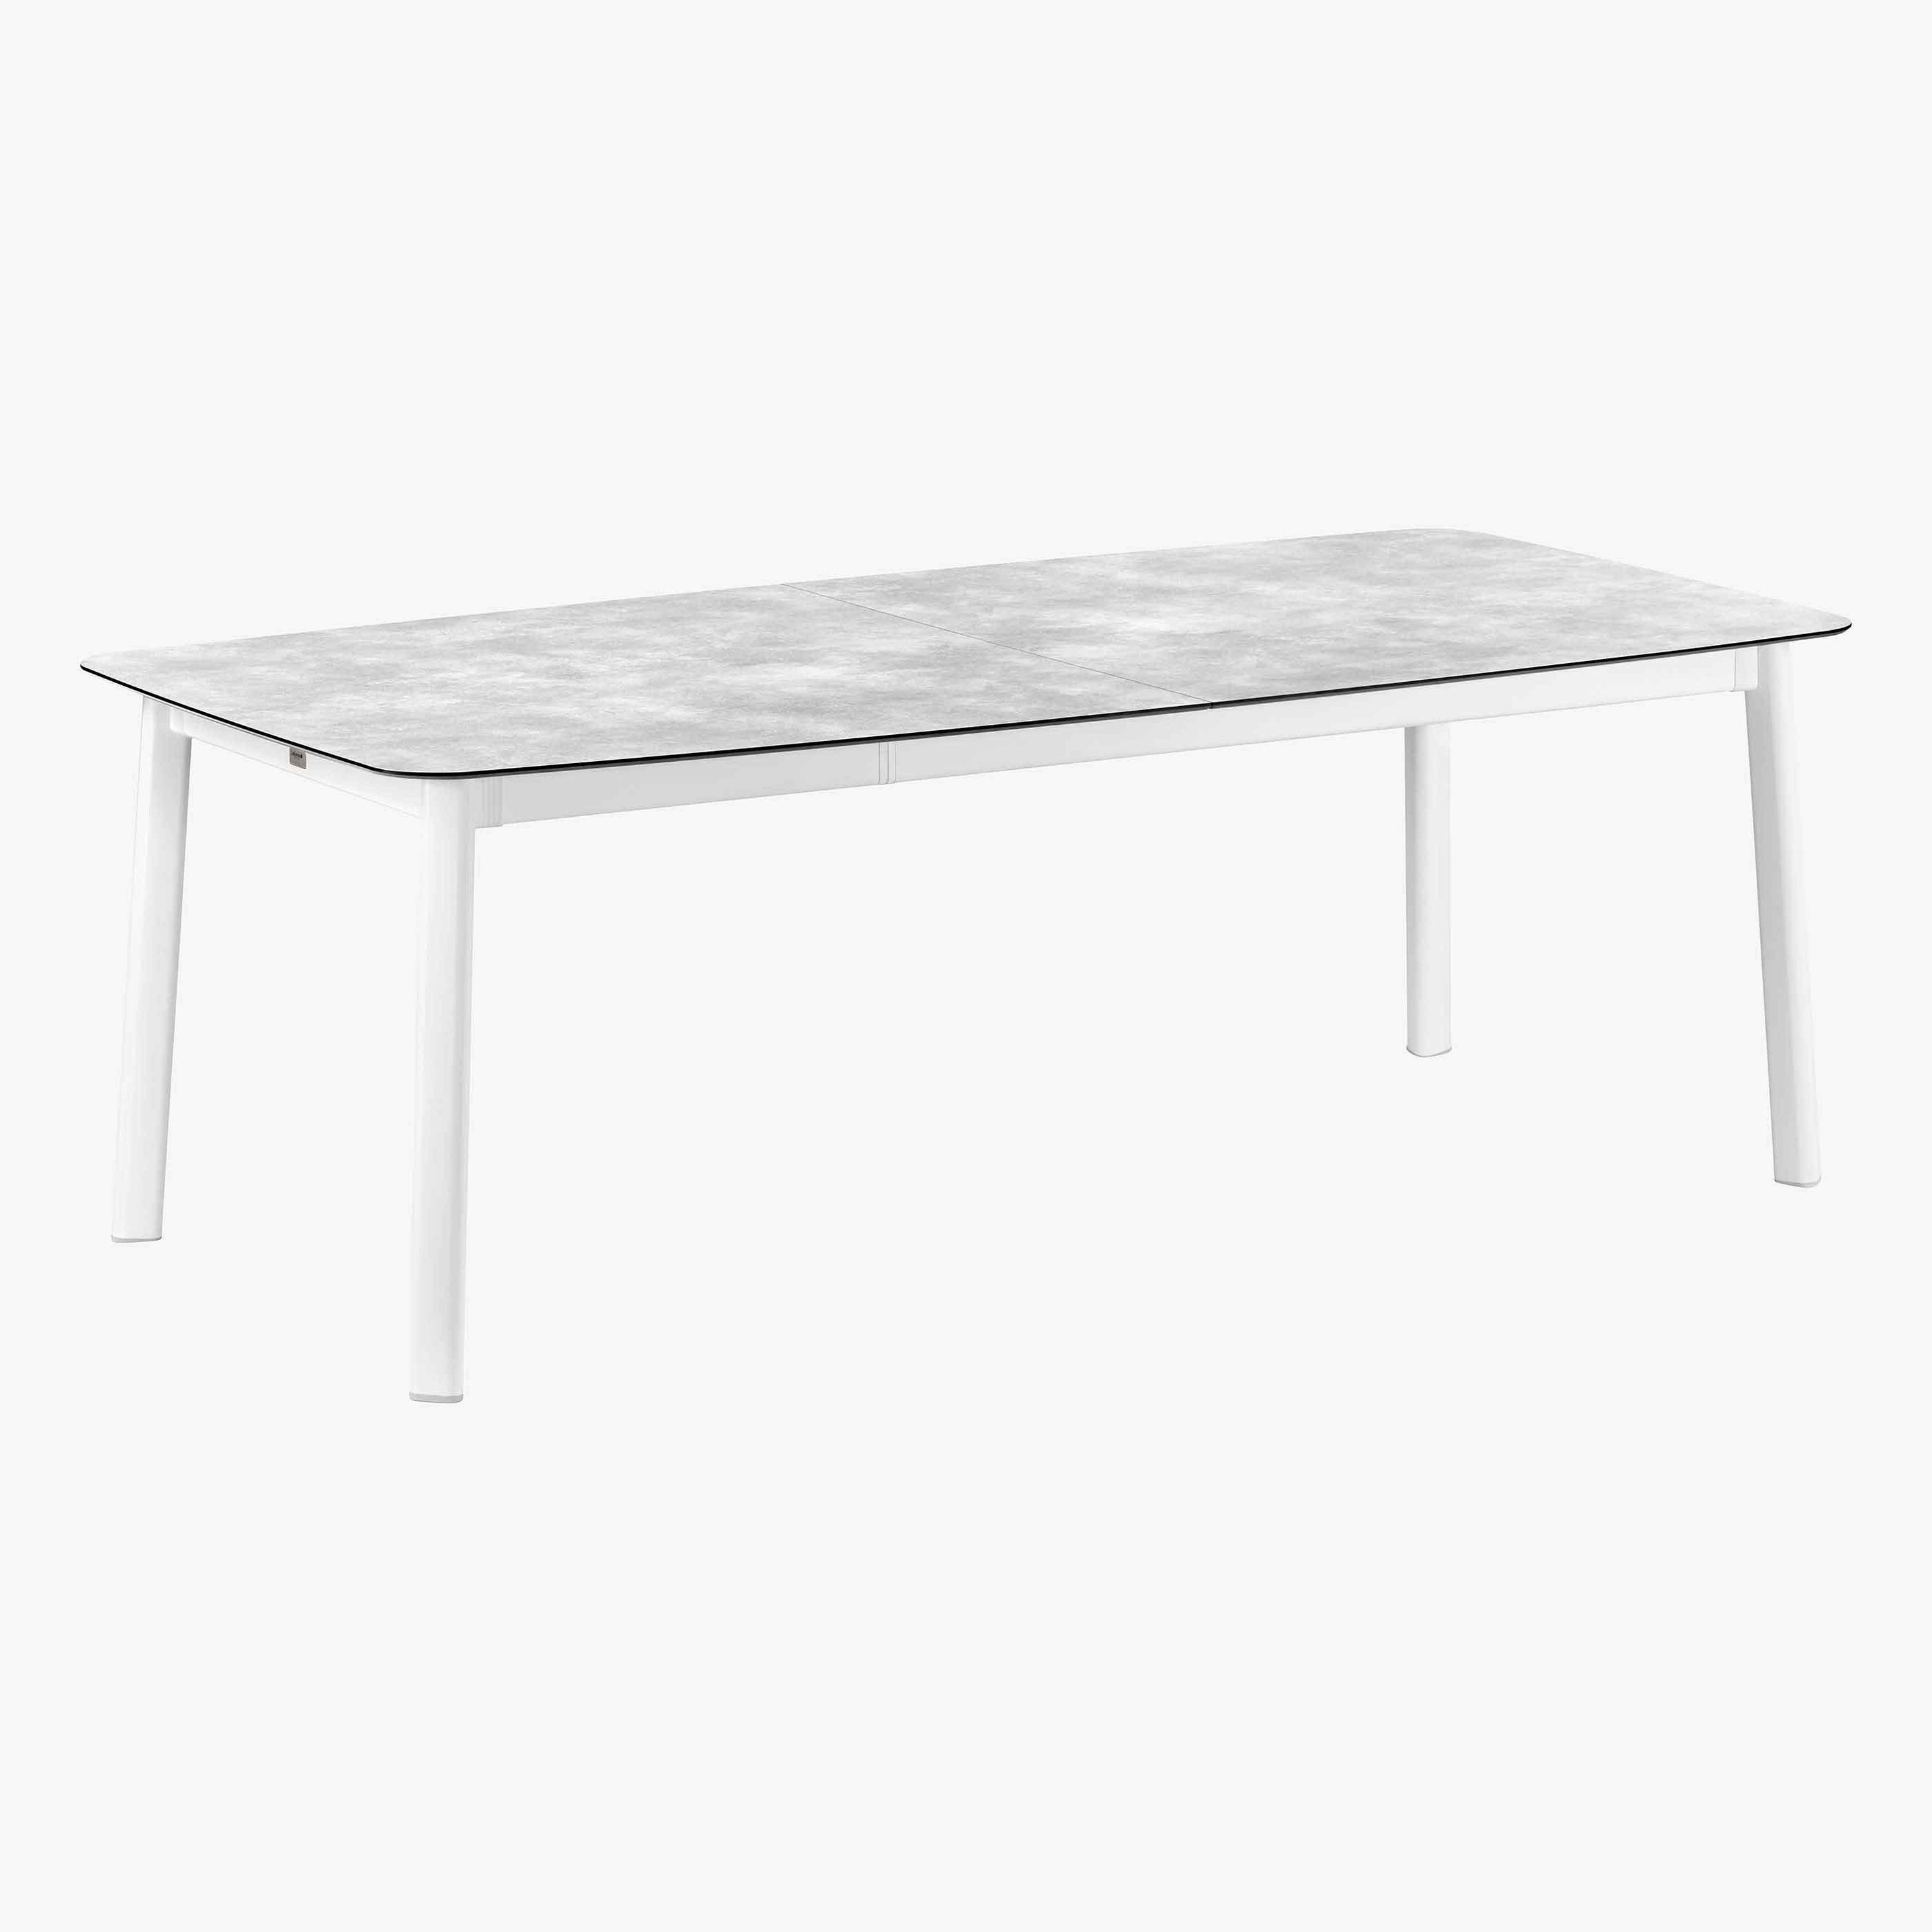 ANCÔNE TABLE EXTENSIBLE